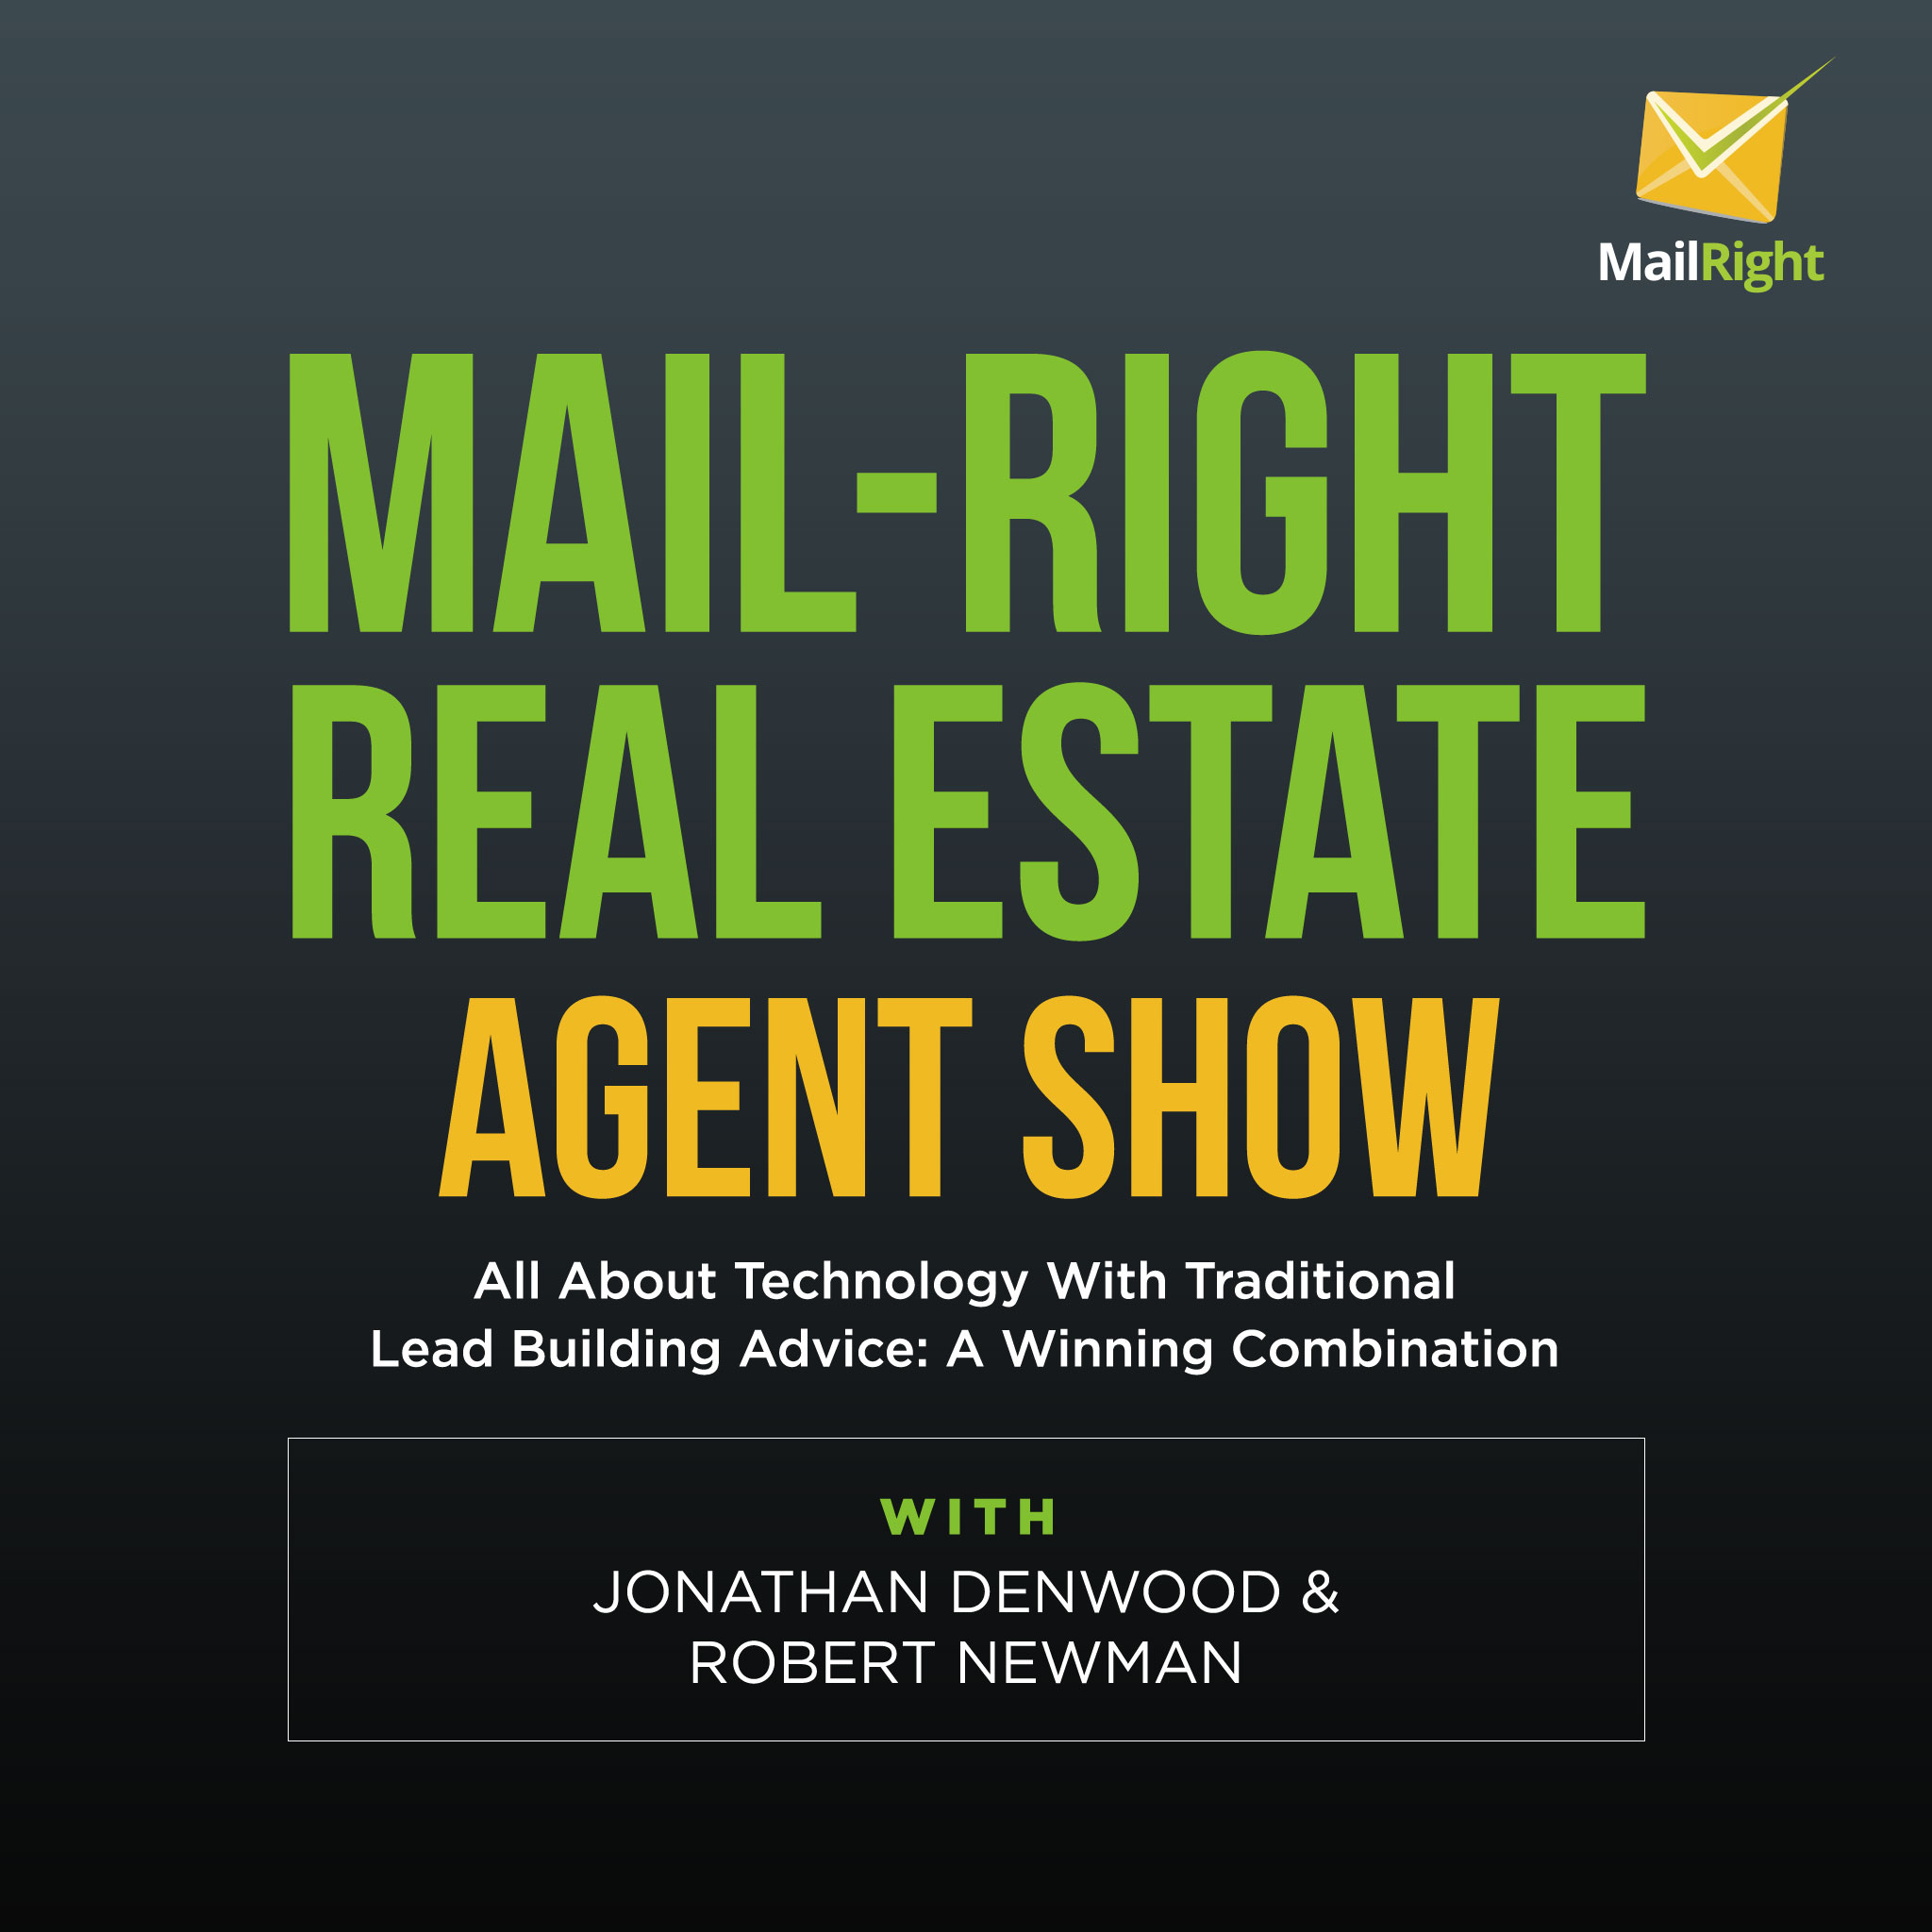 Mail-Right: Real Estate Agents Show: About Latest Online Marketing Technology  show art